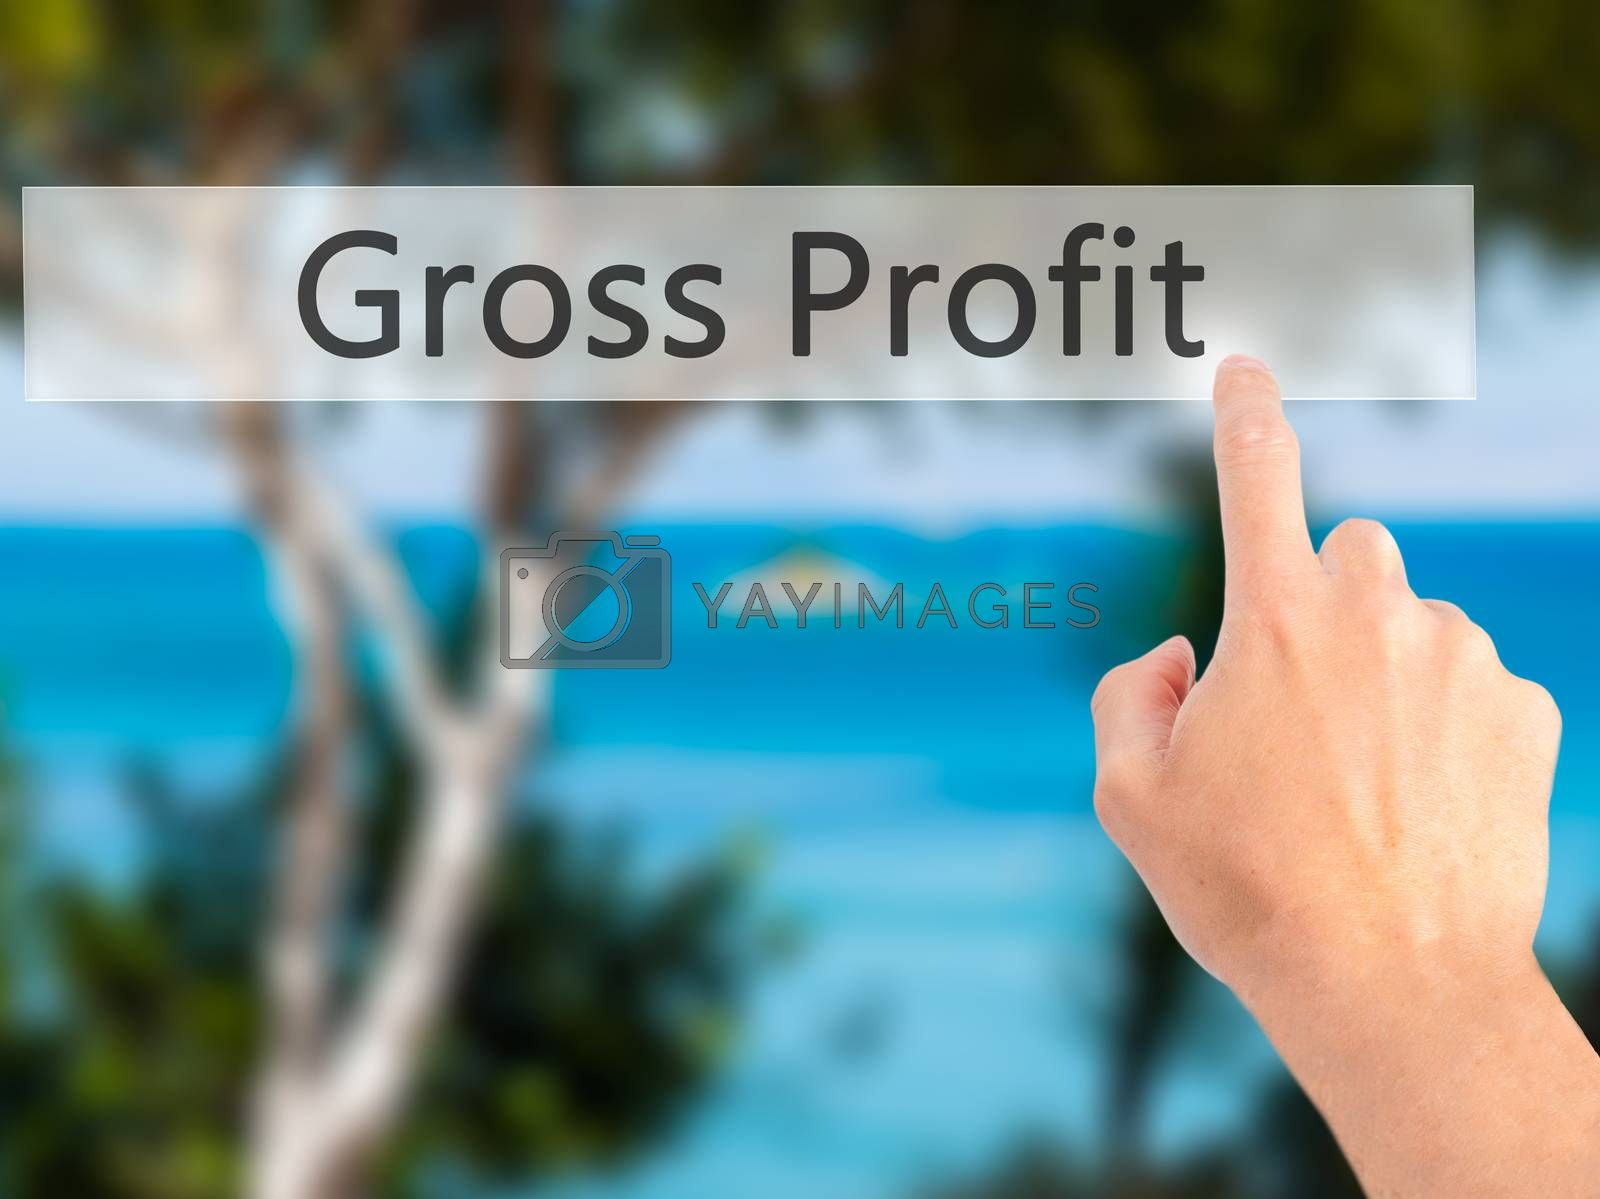 Gross Profit - Hand pressing a button on blurred background conc by jackald